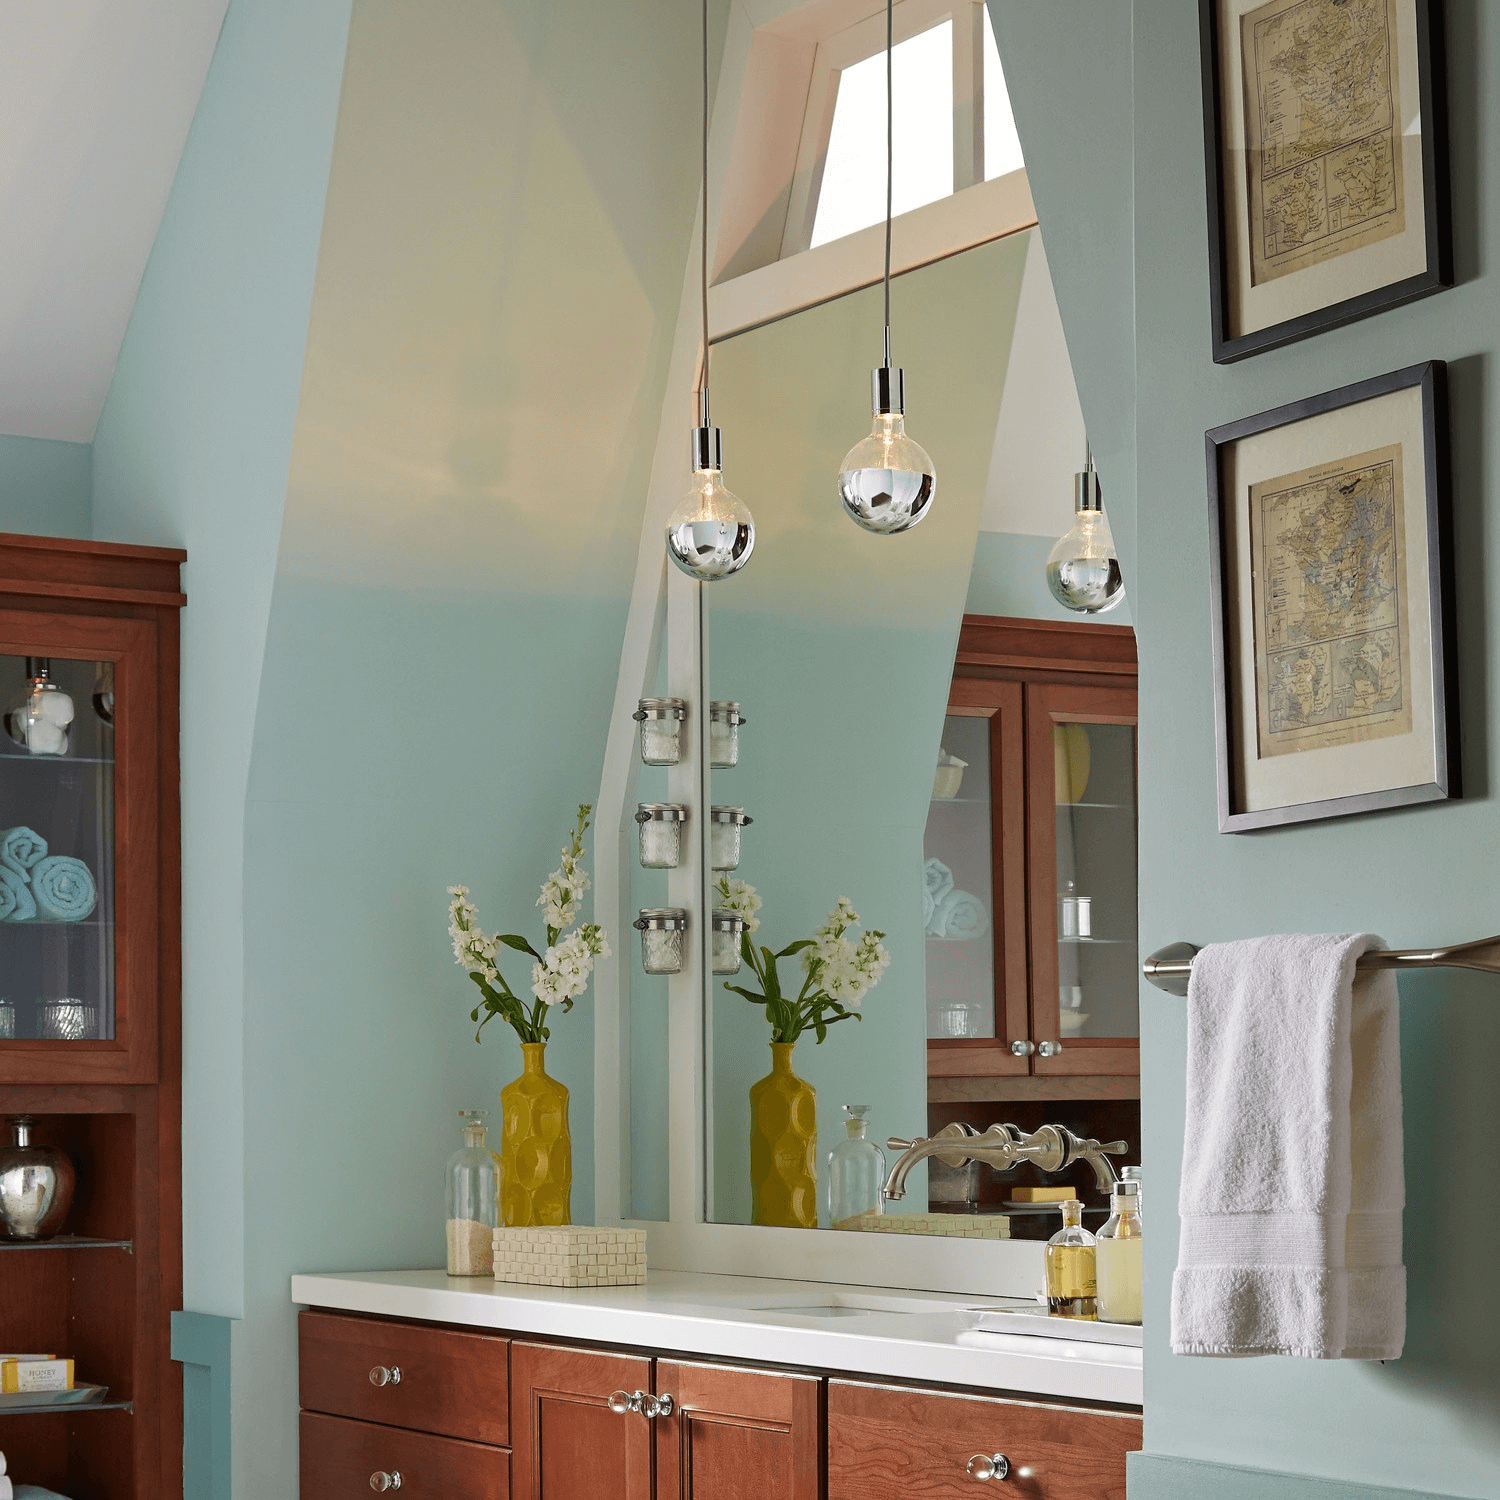 Bathroom pendant lighting ideas for beginners for Pendant lighting for bathroom vanity